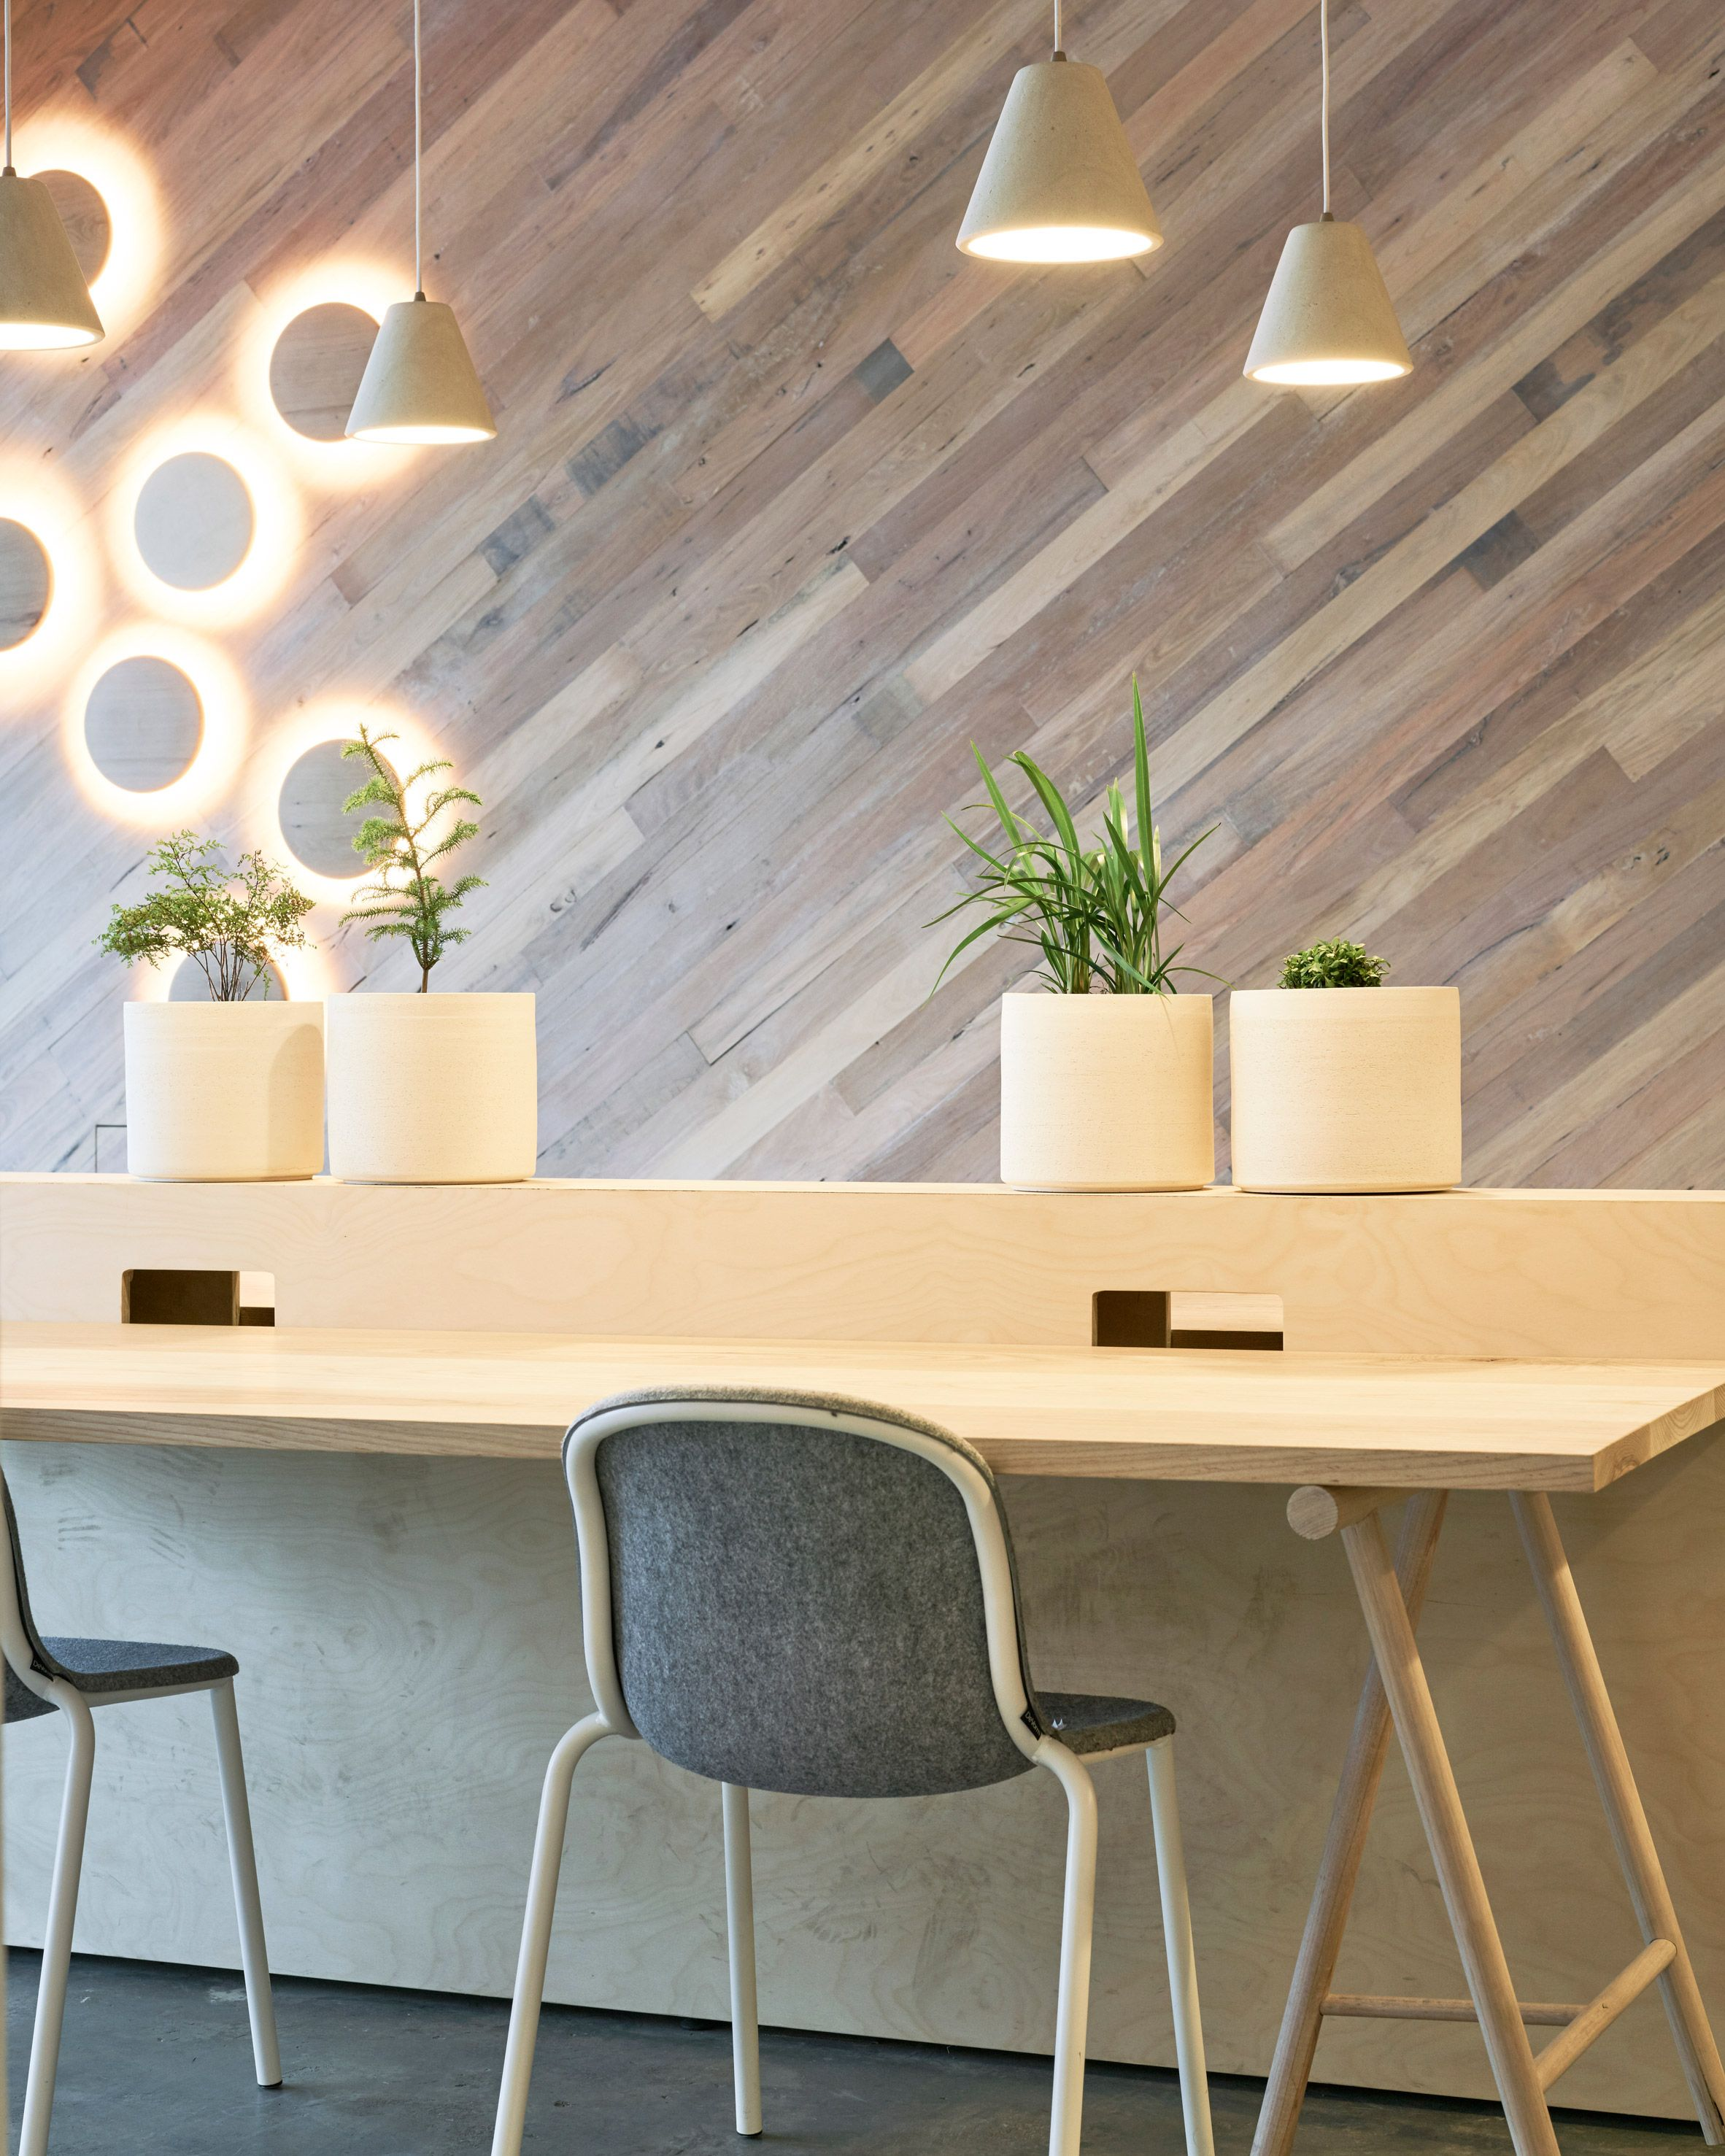 Home Decor Home Based Business: Melbourne Based Creatives Have Come Put Their Skills